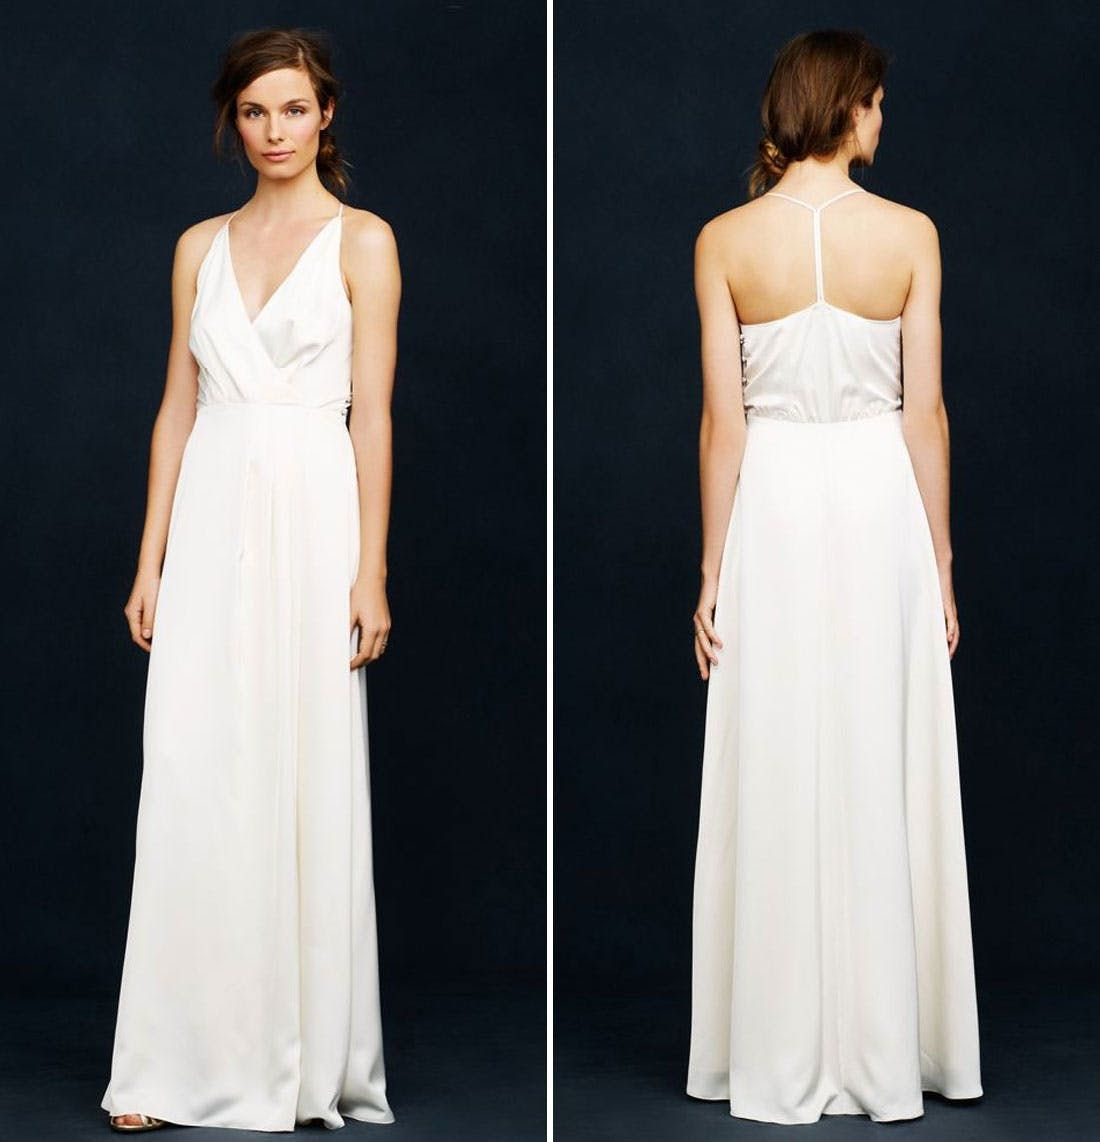 25 NonTraditional Wedding Dresses for the Modern Bride